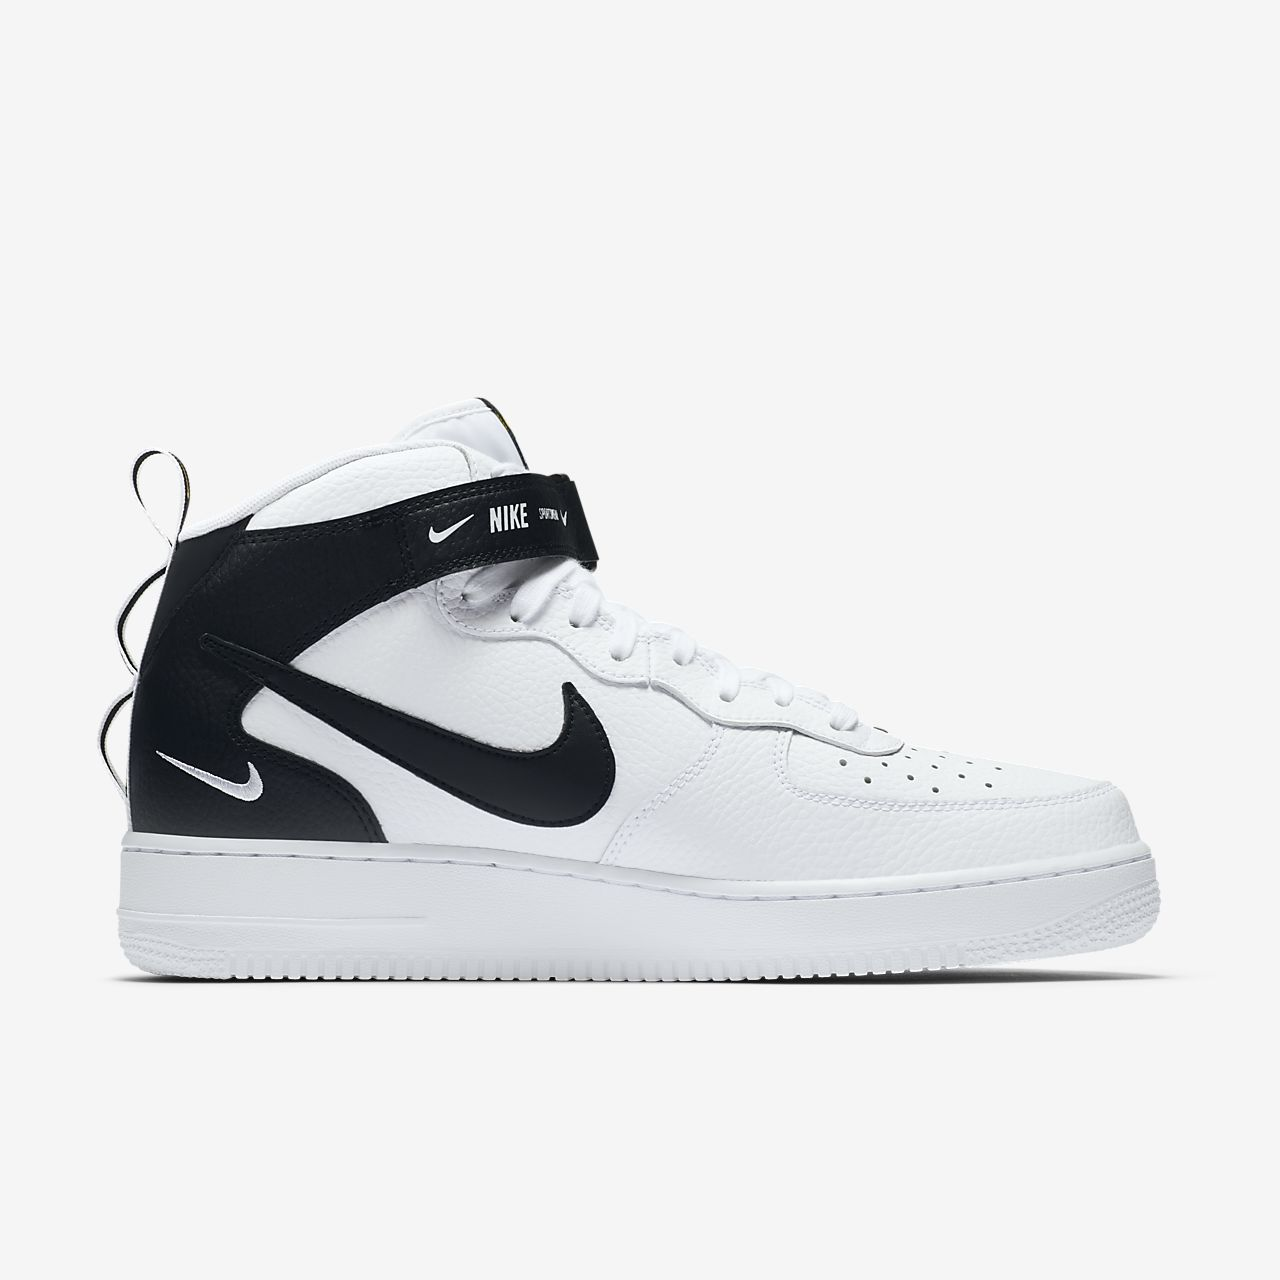 huge selection of 839ff 724fc Chaussure pour Homme. Nike Air Force 1 07 Mid LV8